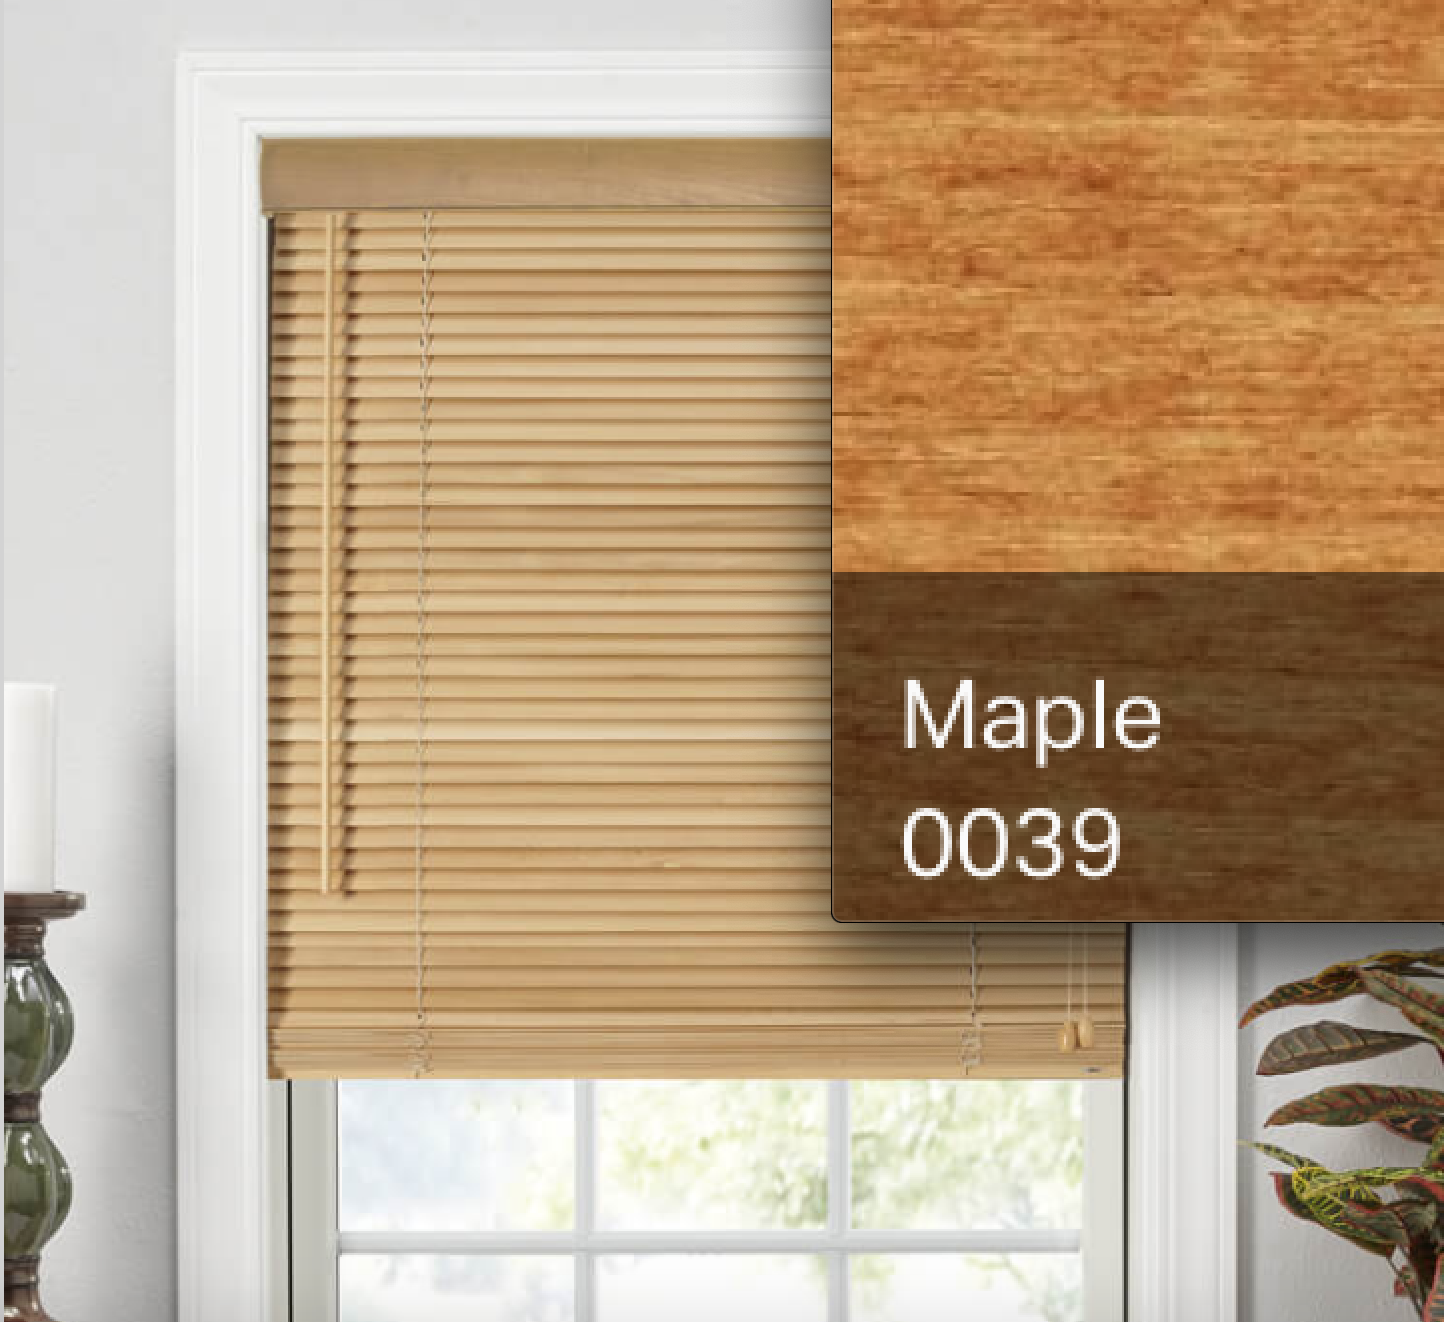 "Bali 1"" Northern Heights Wood Blinds Maple 23 3/4"" x 37 7/8"" window treatments"